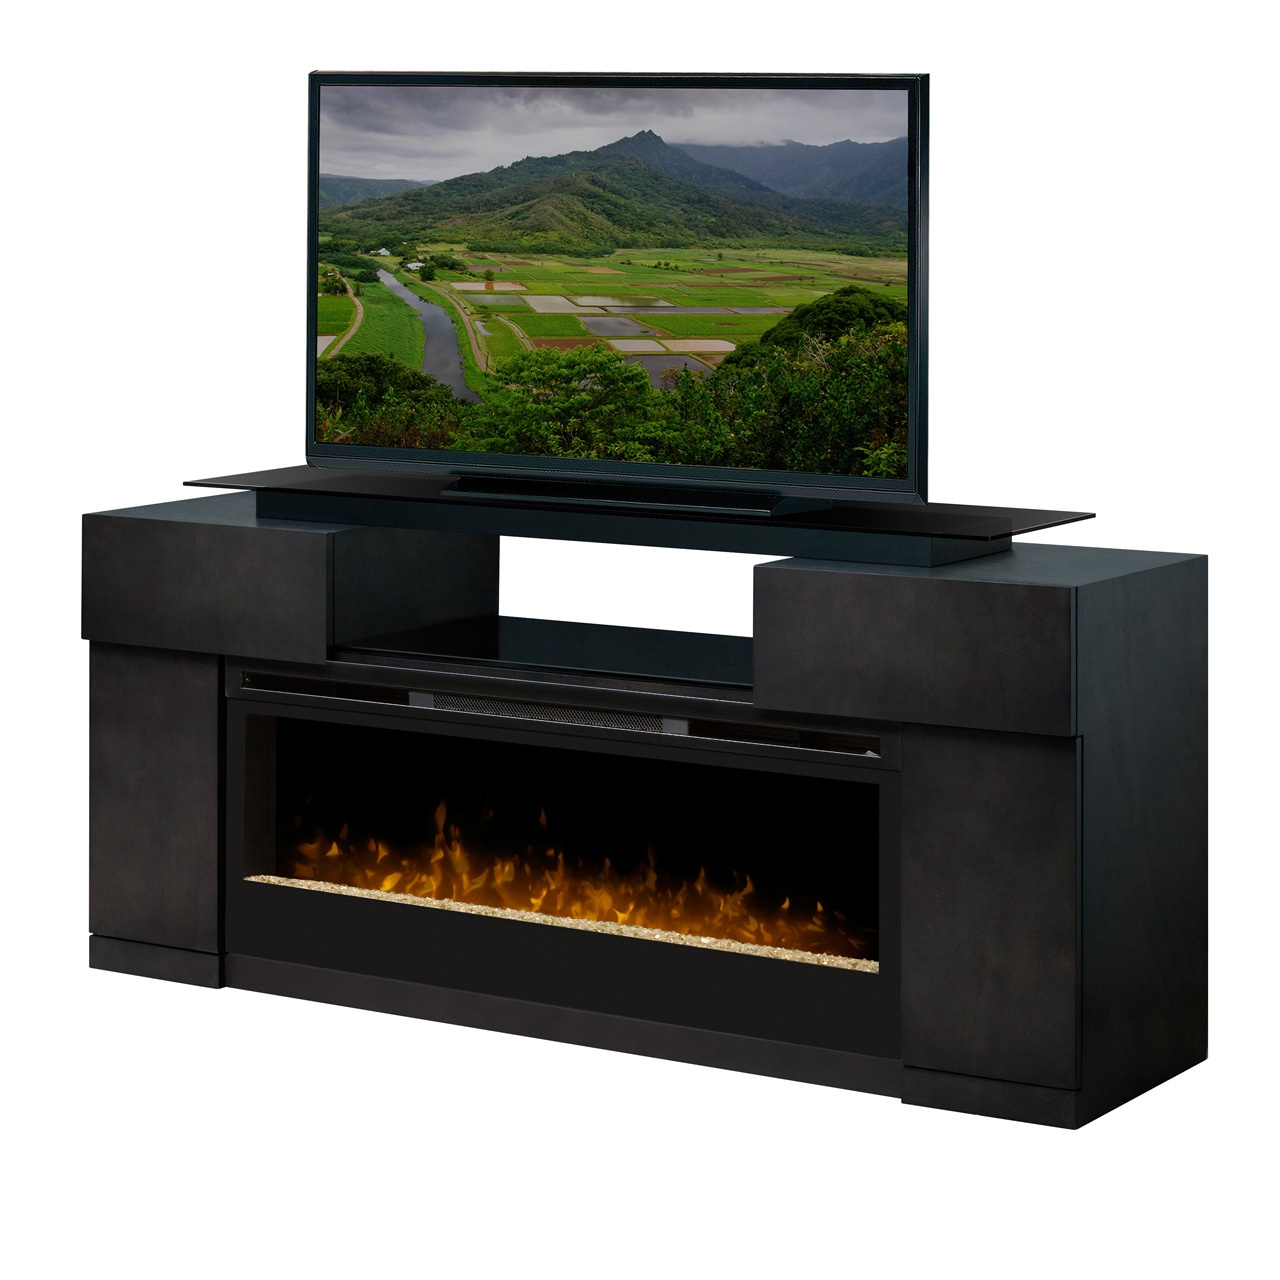 Dimplex concord gds50g5 1243sc electric fireplace media center dimplex concord gds50g5 1243sc electric fireplace media center teraionfo